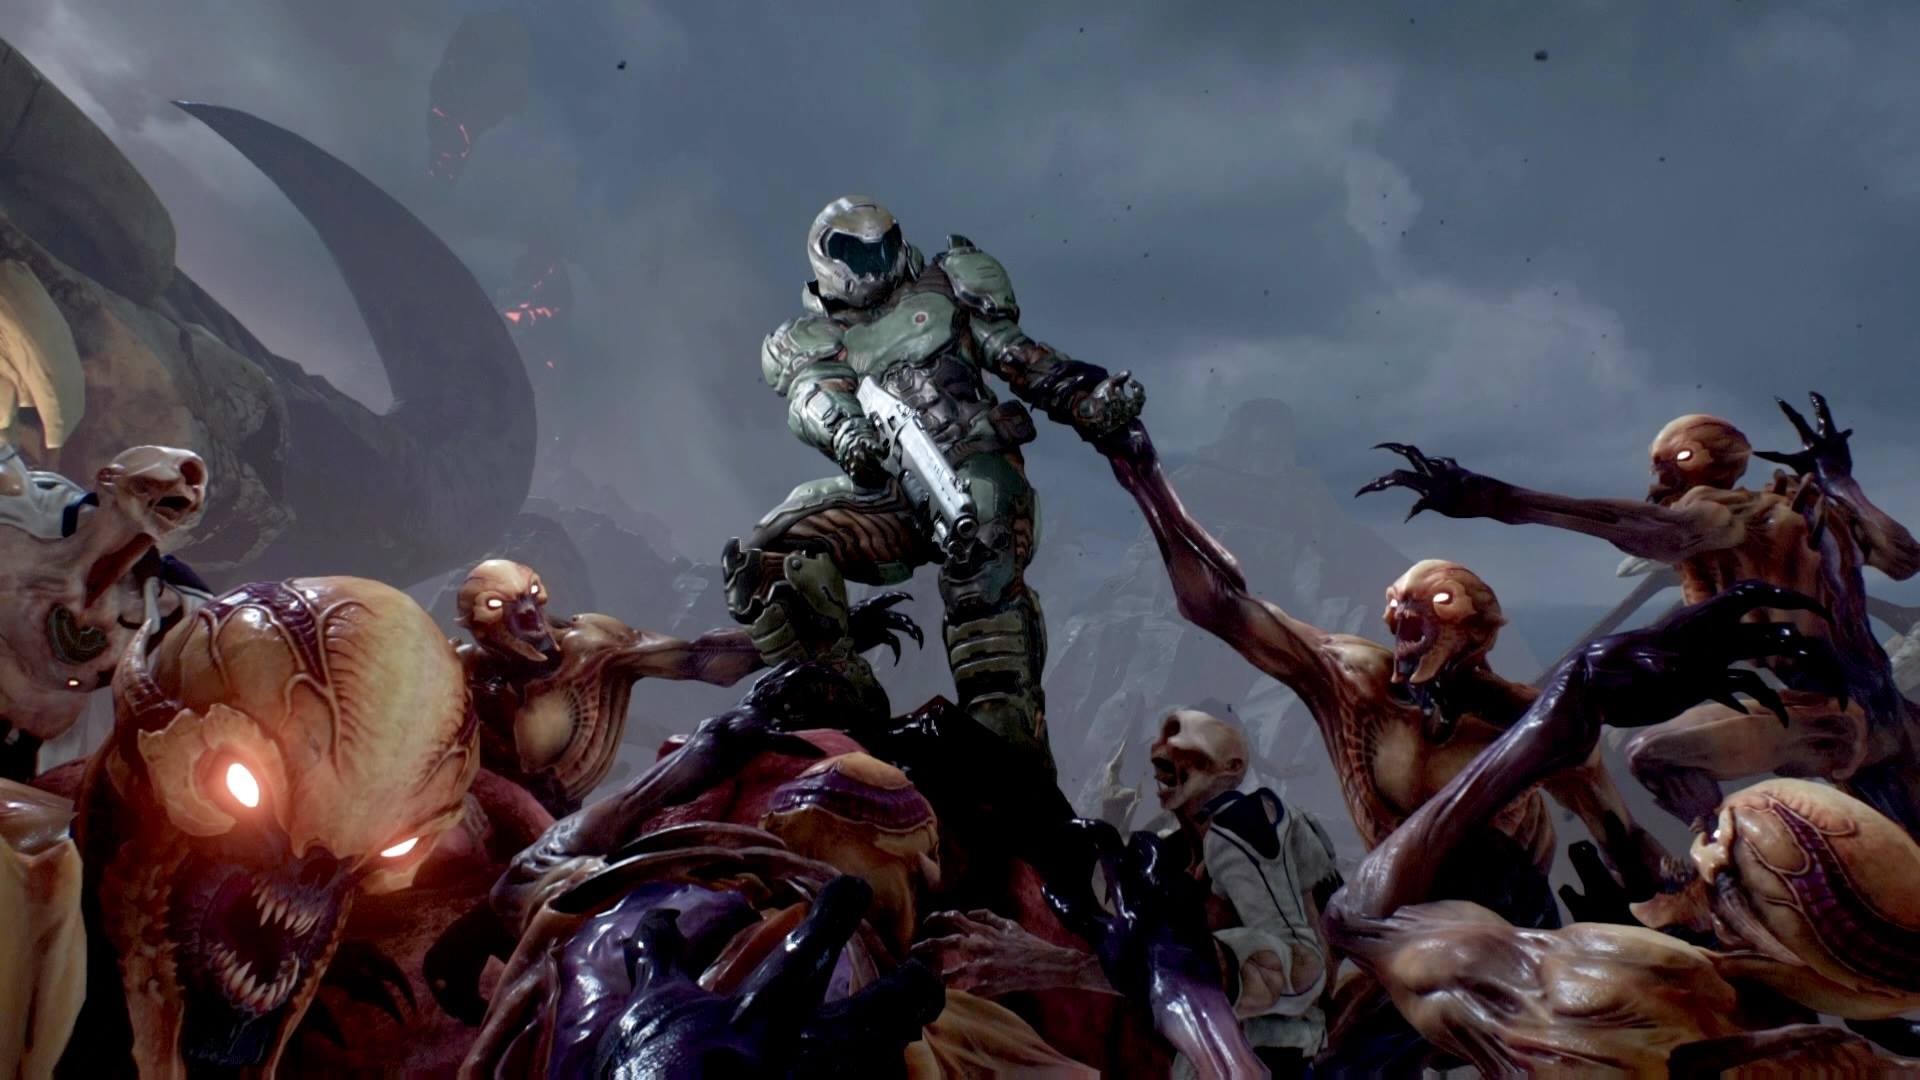 Doom is indie-style gaming at its best | Ars Technica